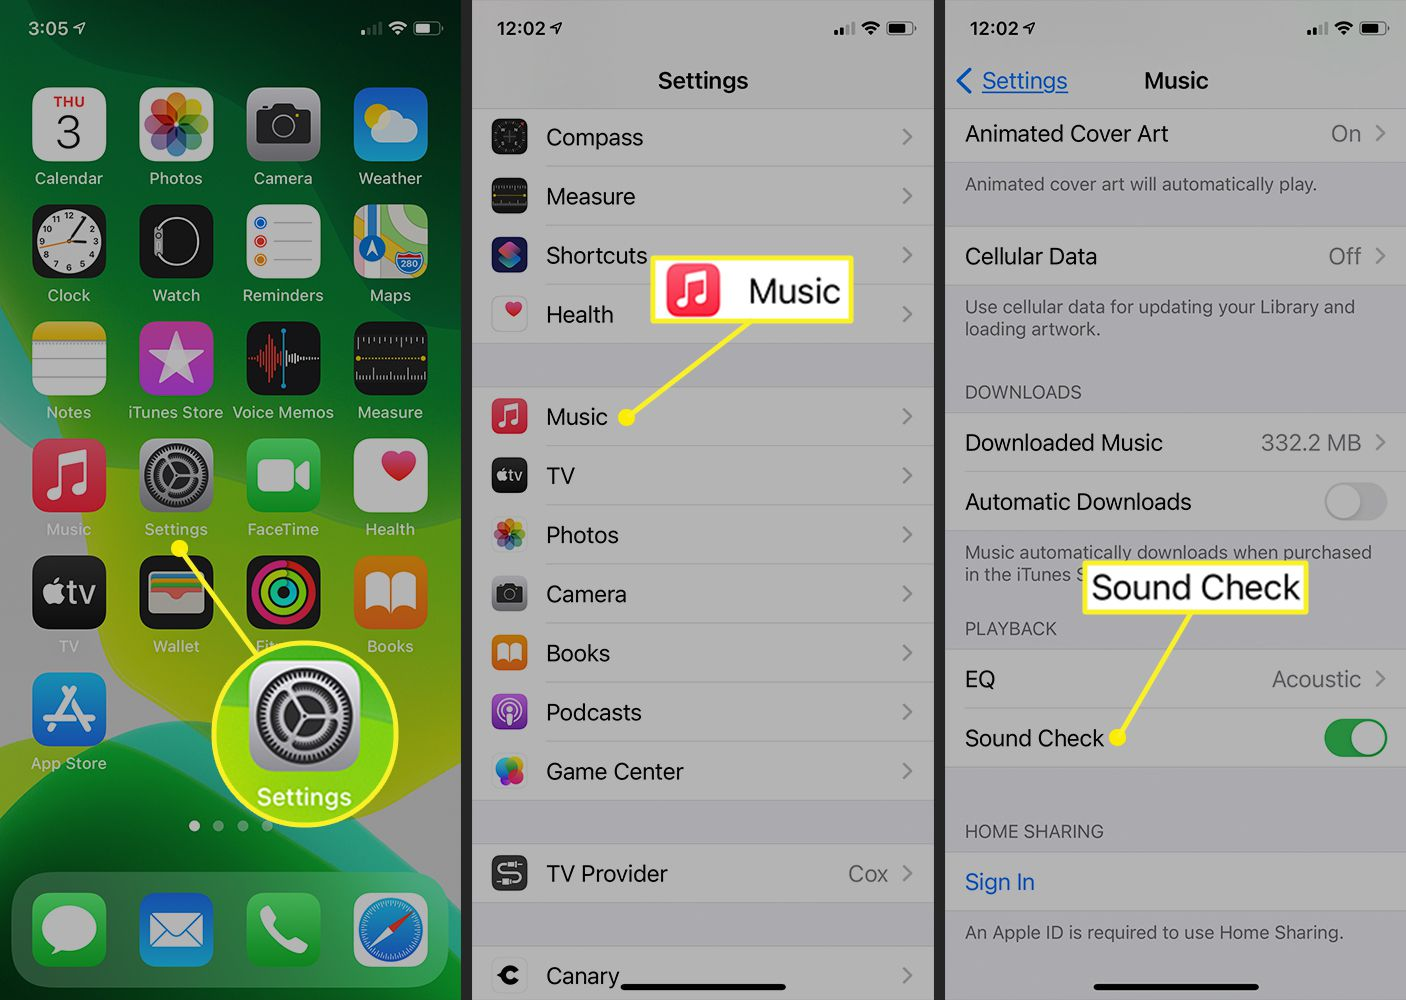 iPhone Settings showing Sound Check